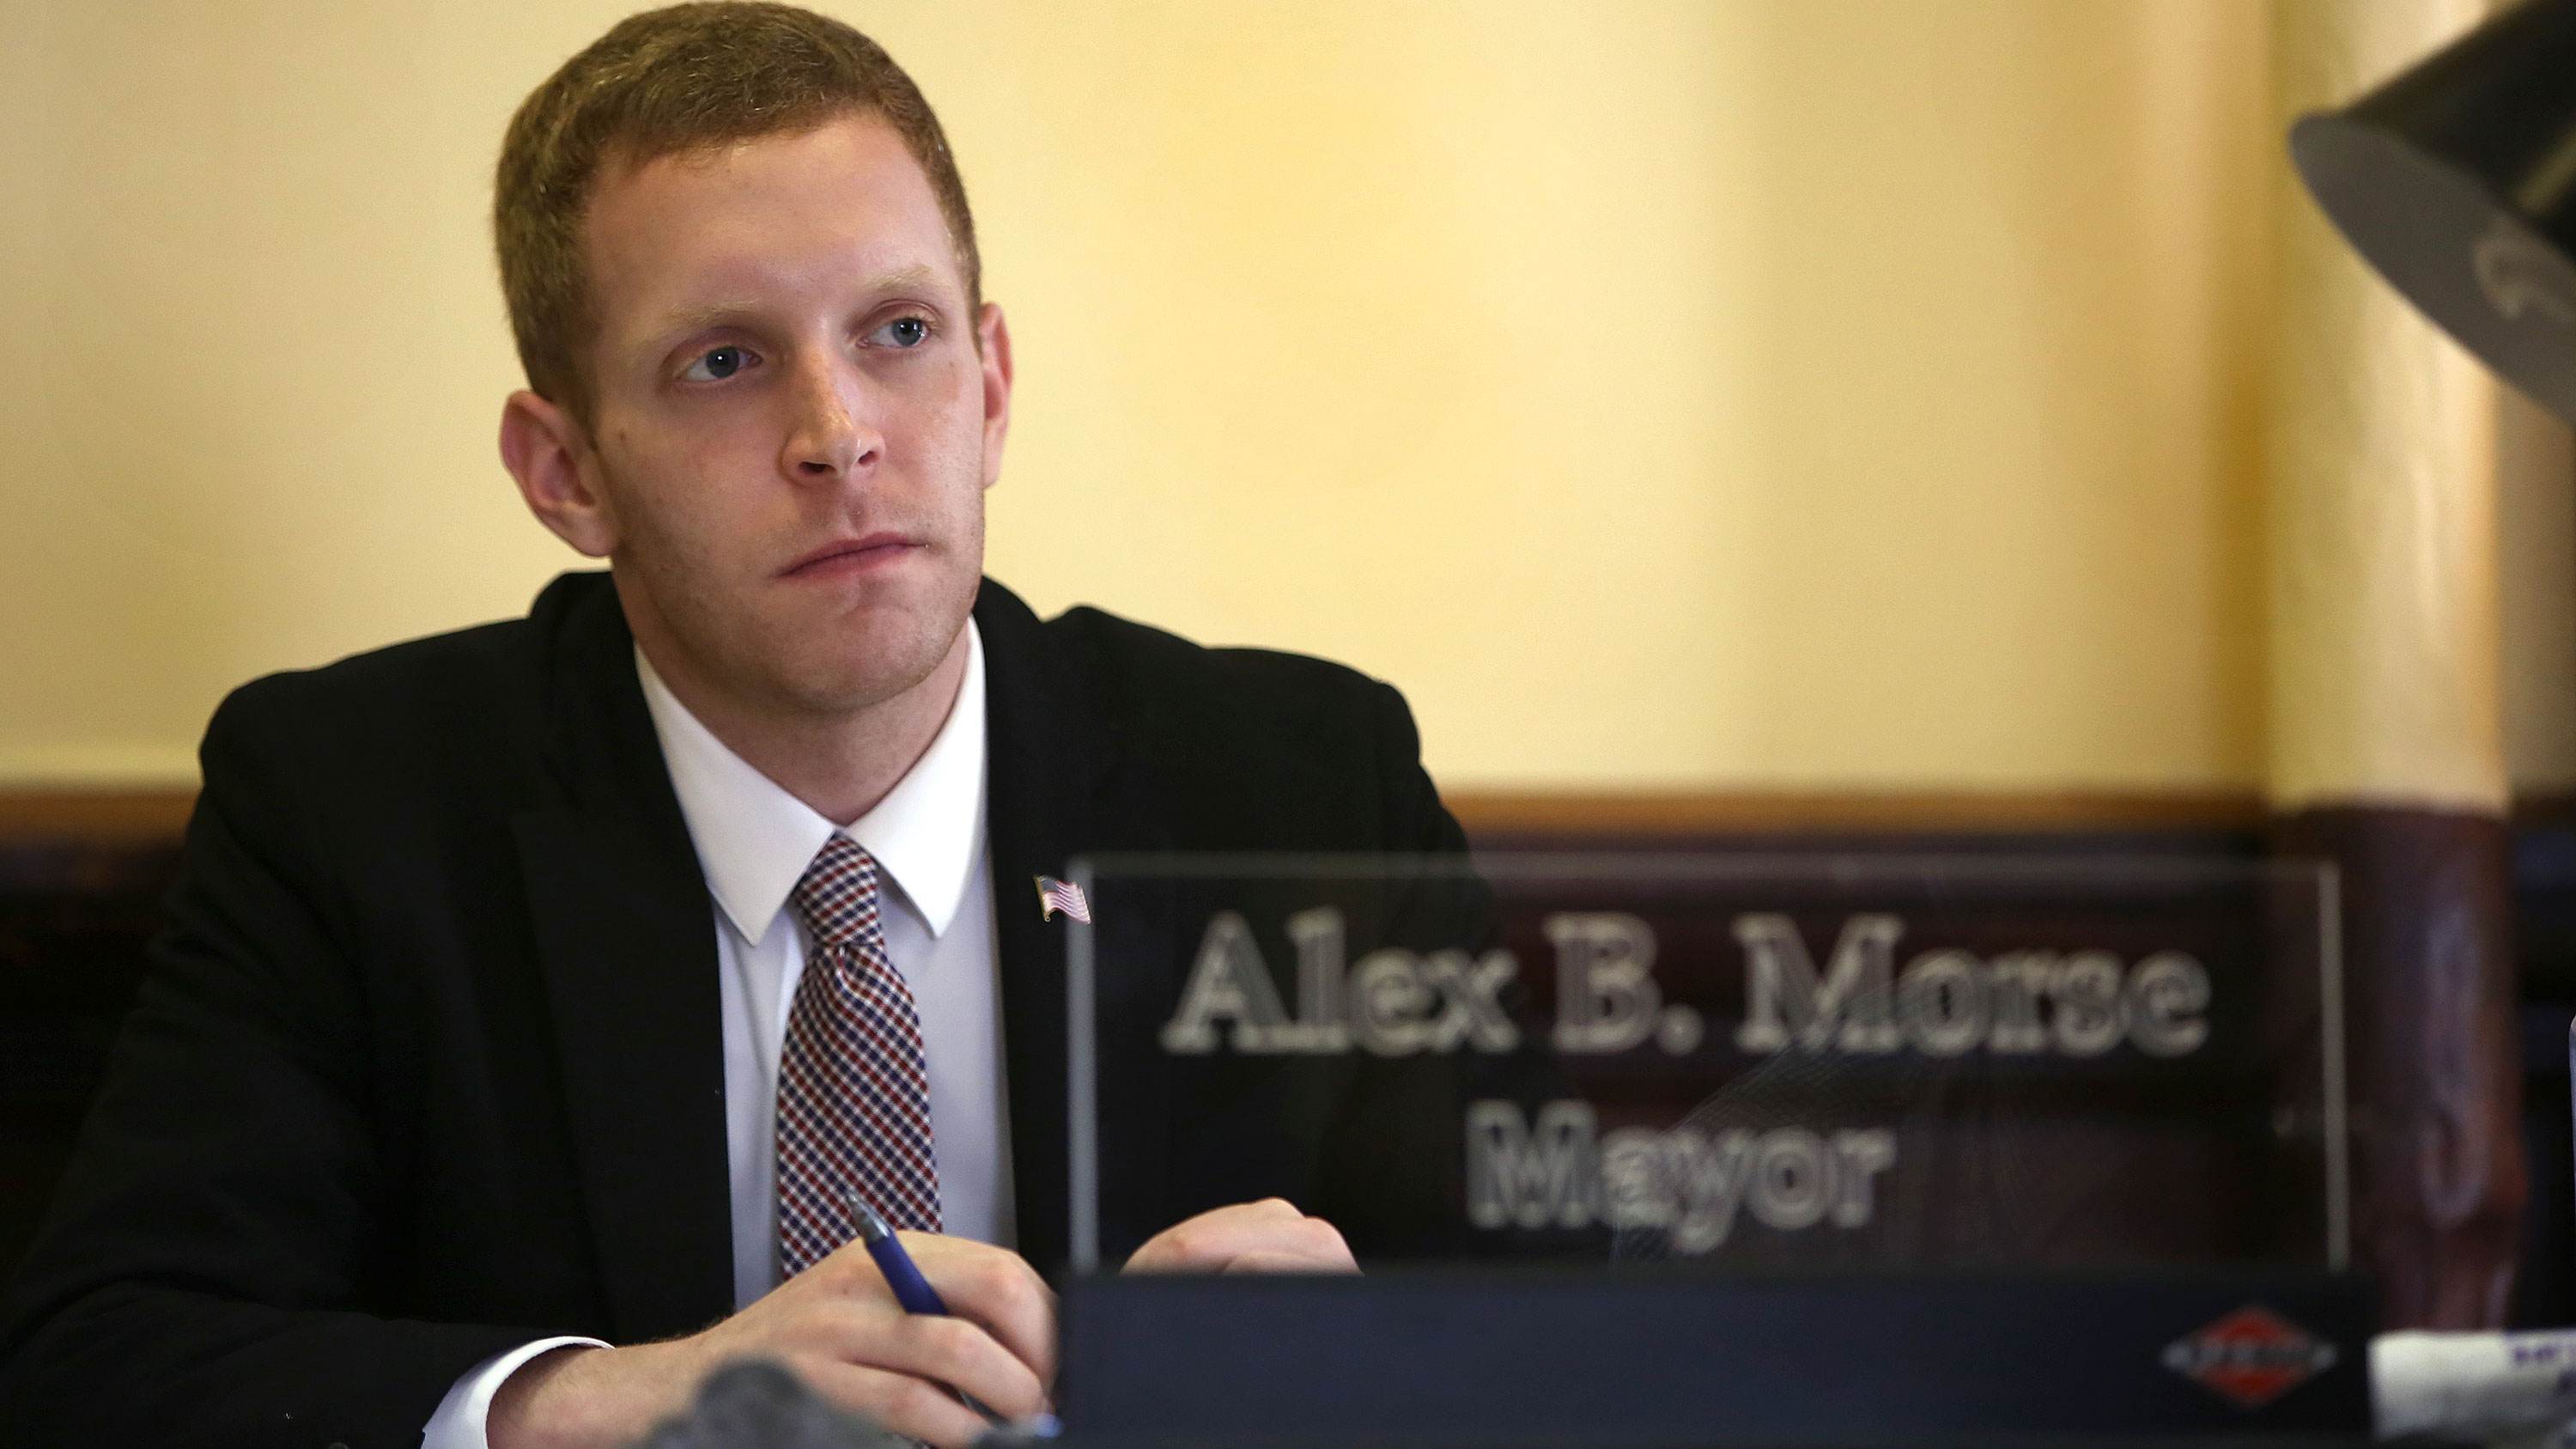 Democratic House candidate in Massachusetts apologizes after being accused of inappropriate behavior